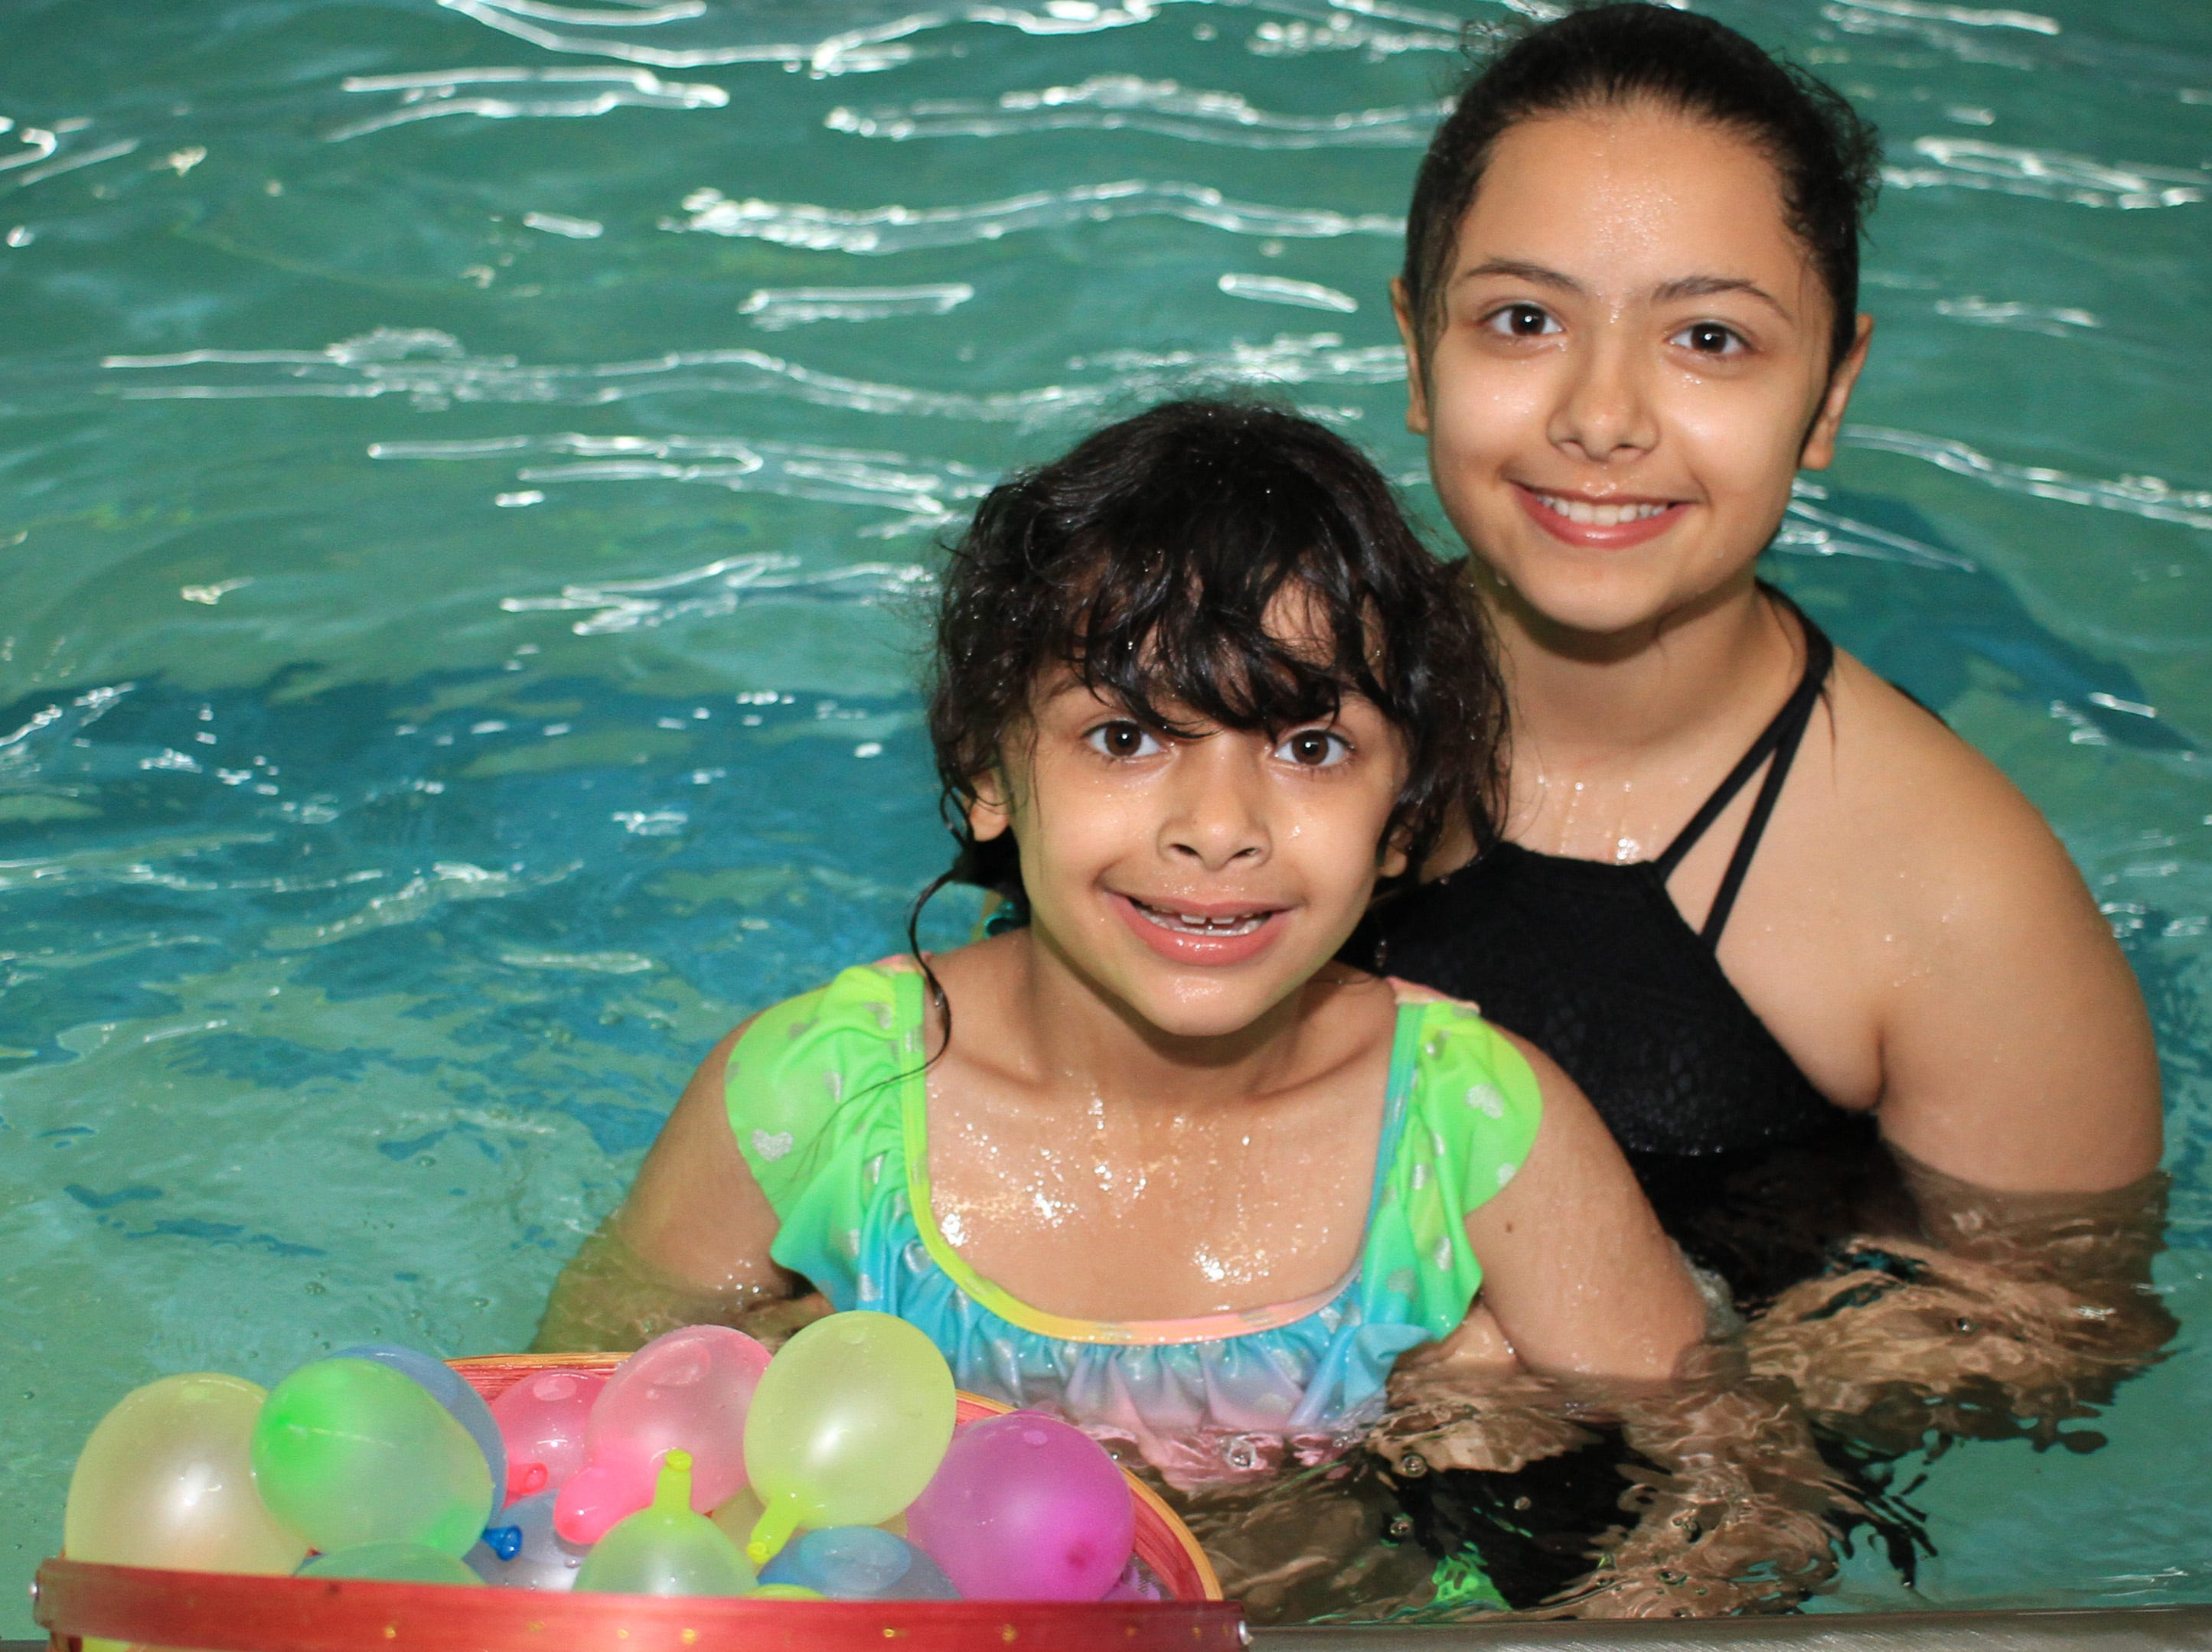 Hanta and Hasti Saadatyar dove for a full basket of eggs at the Sumner County YMCA Egg Dive in Hendersonville, TN on Saturday, April 13, 2019.